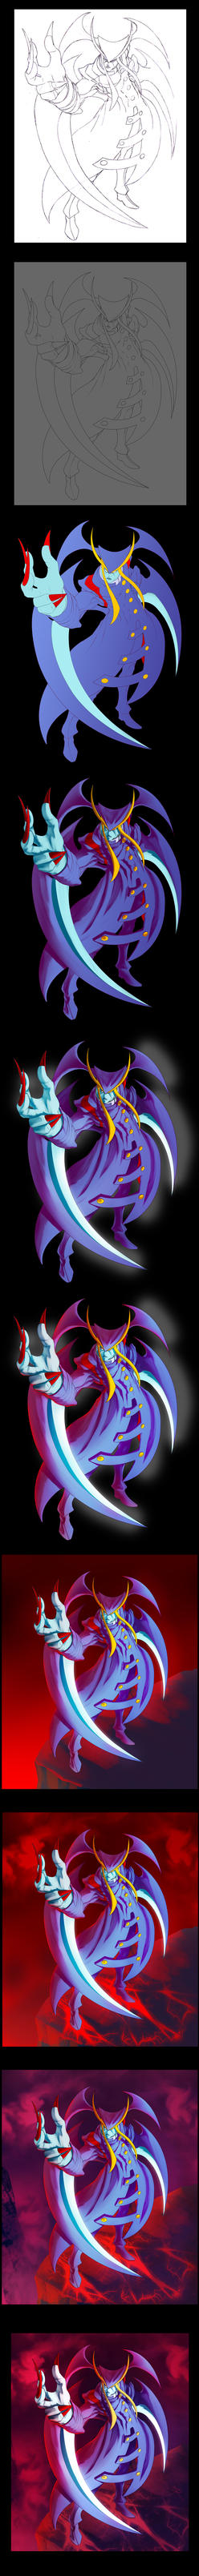 DarkStalkers: JEDAH Process by digitalninja